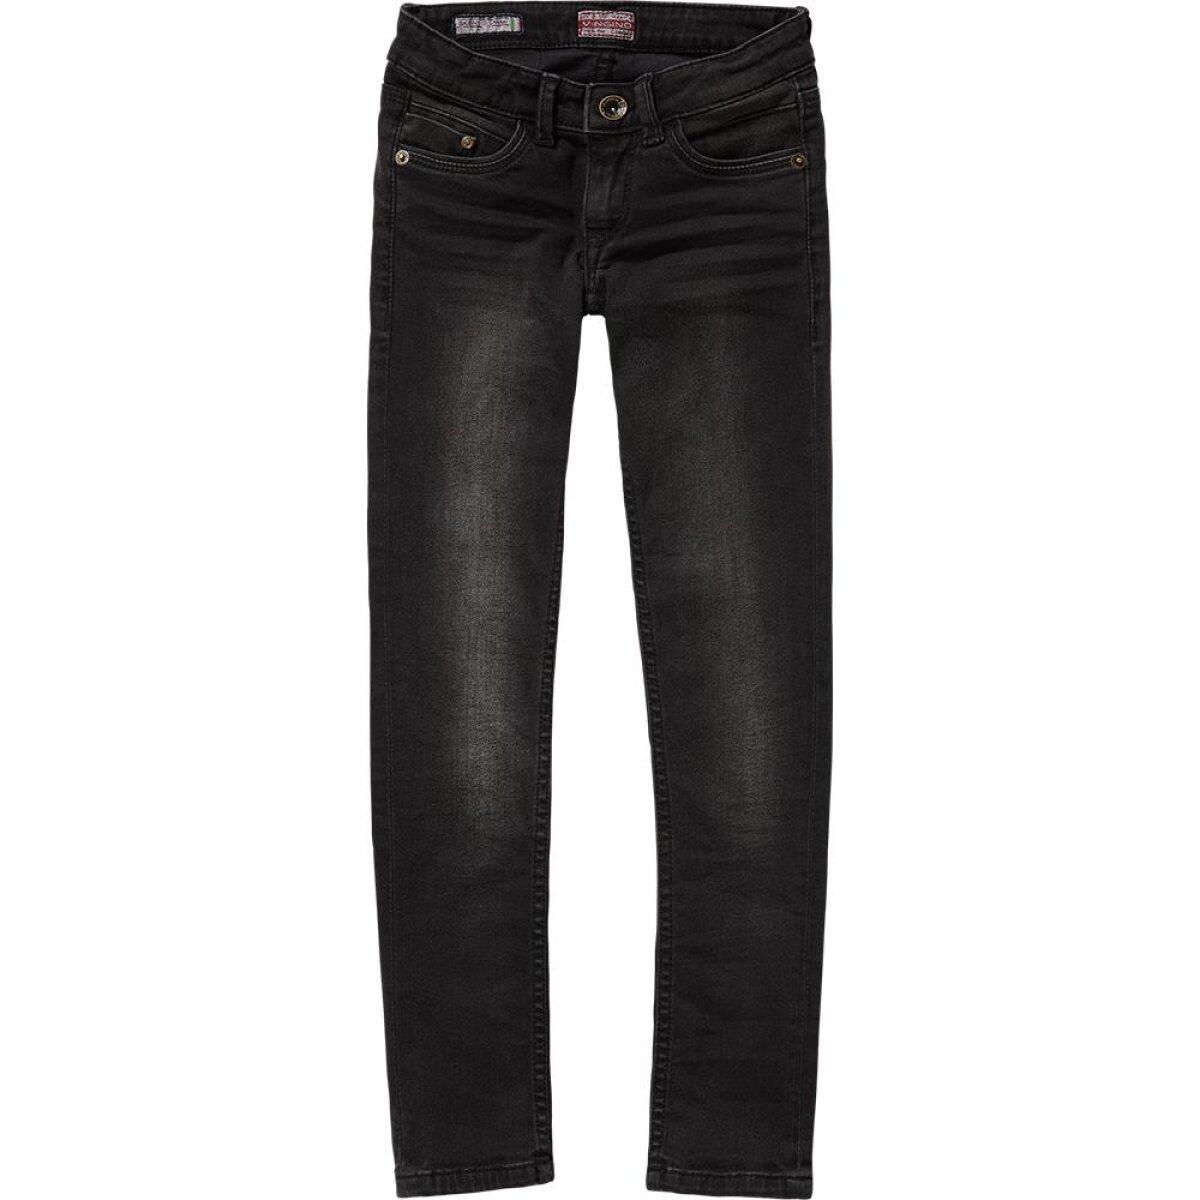 Vingino 'black' jeans GIRL